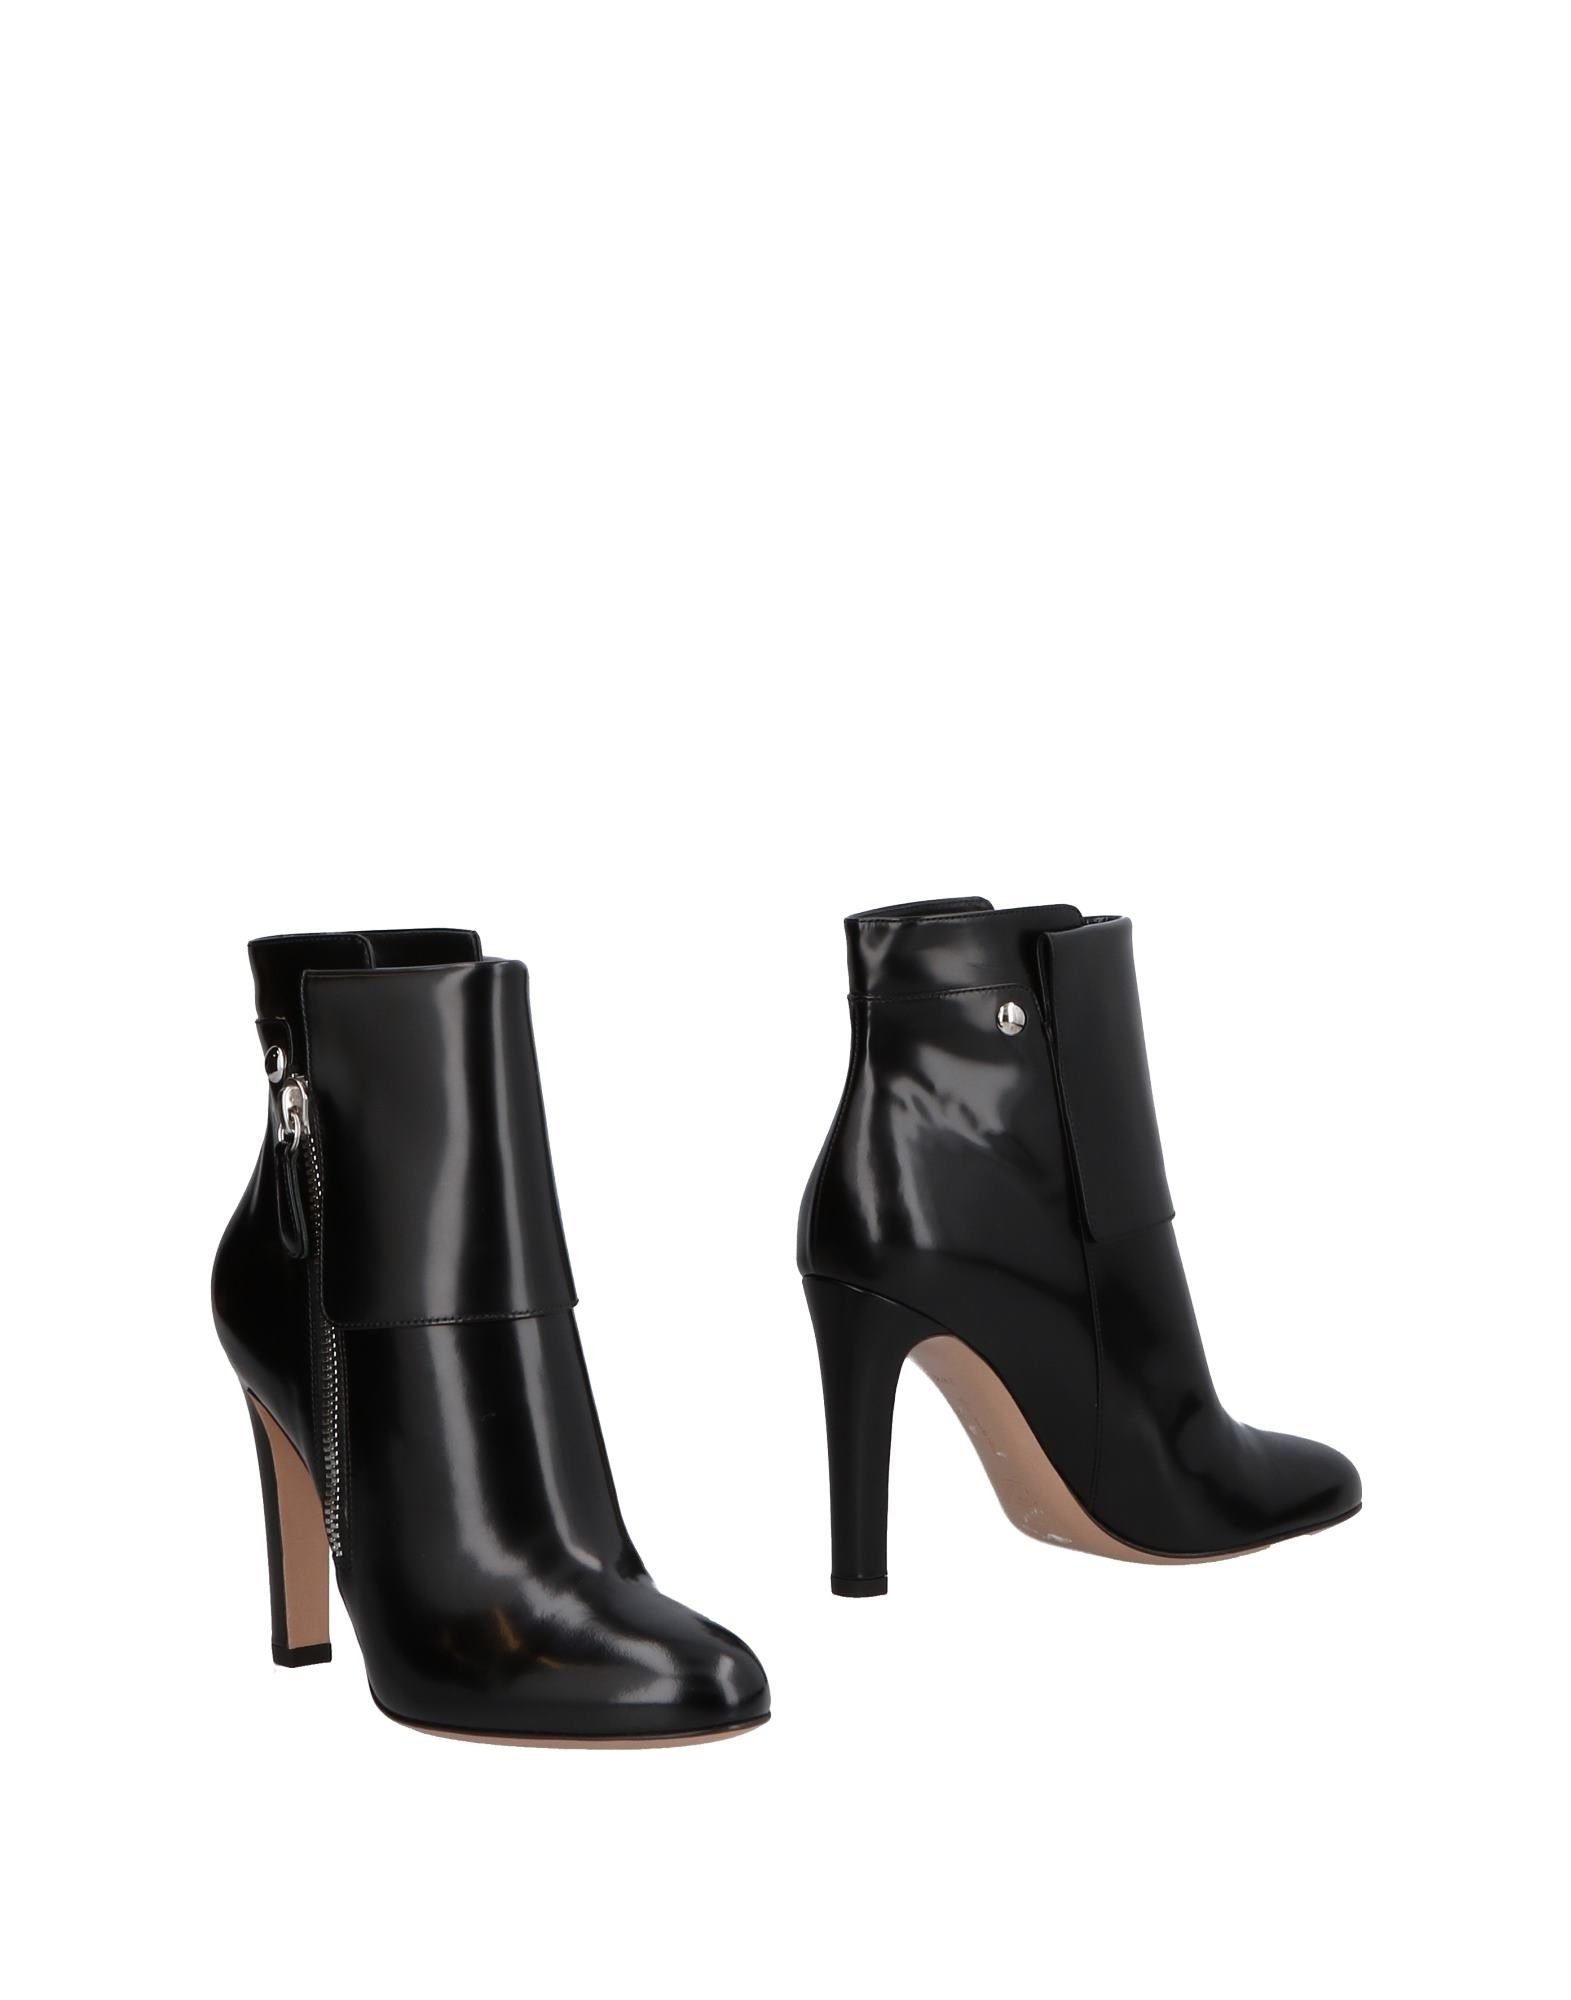 Gianvito Rossi Ankle Boot - Women Gianvito Rossi  Ankle Boots online on  Rossi Australia - 11505199OI d1f3f9